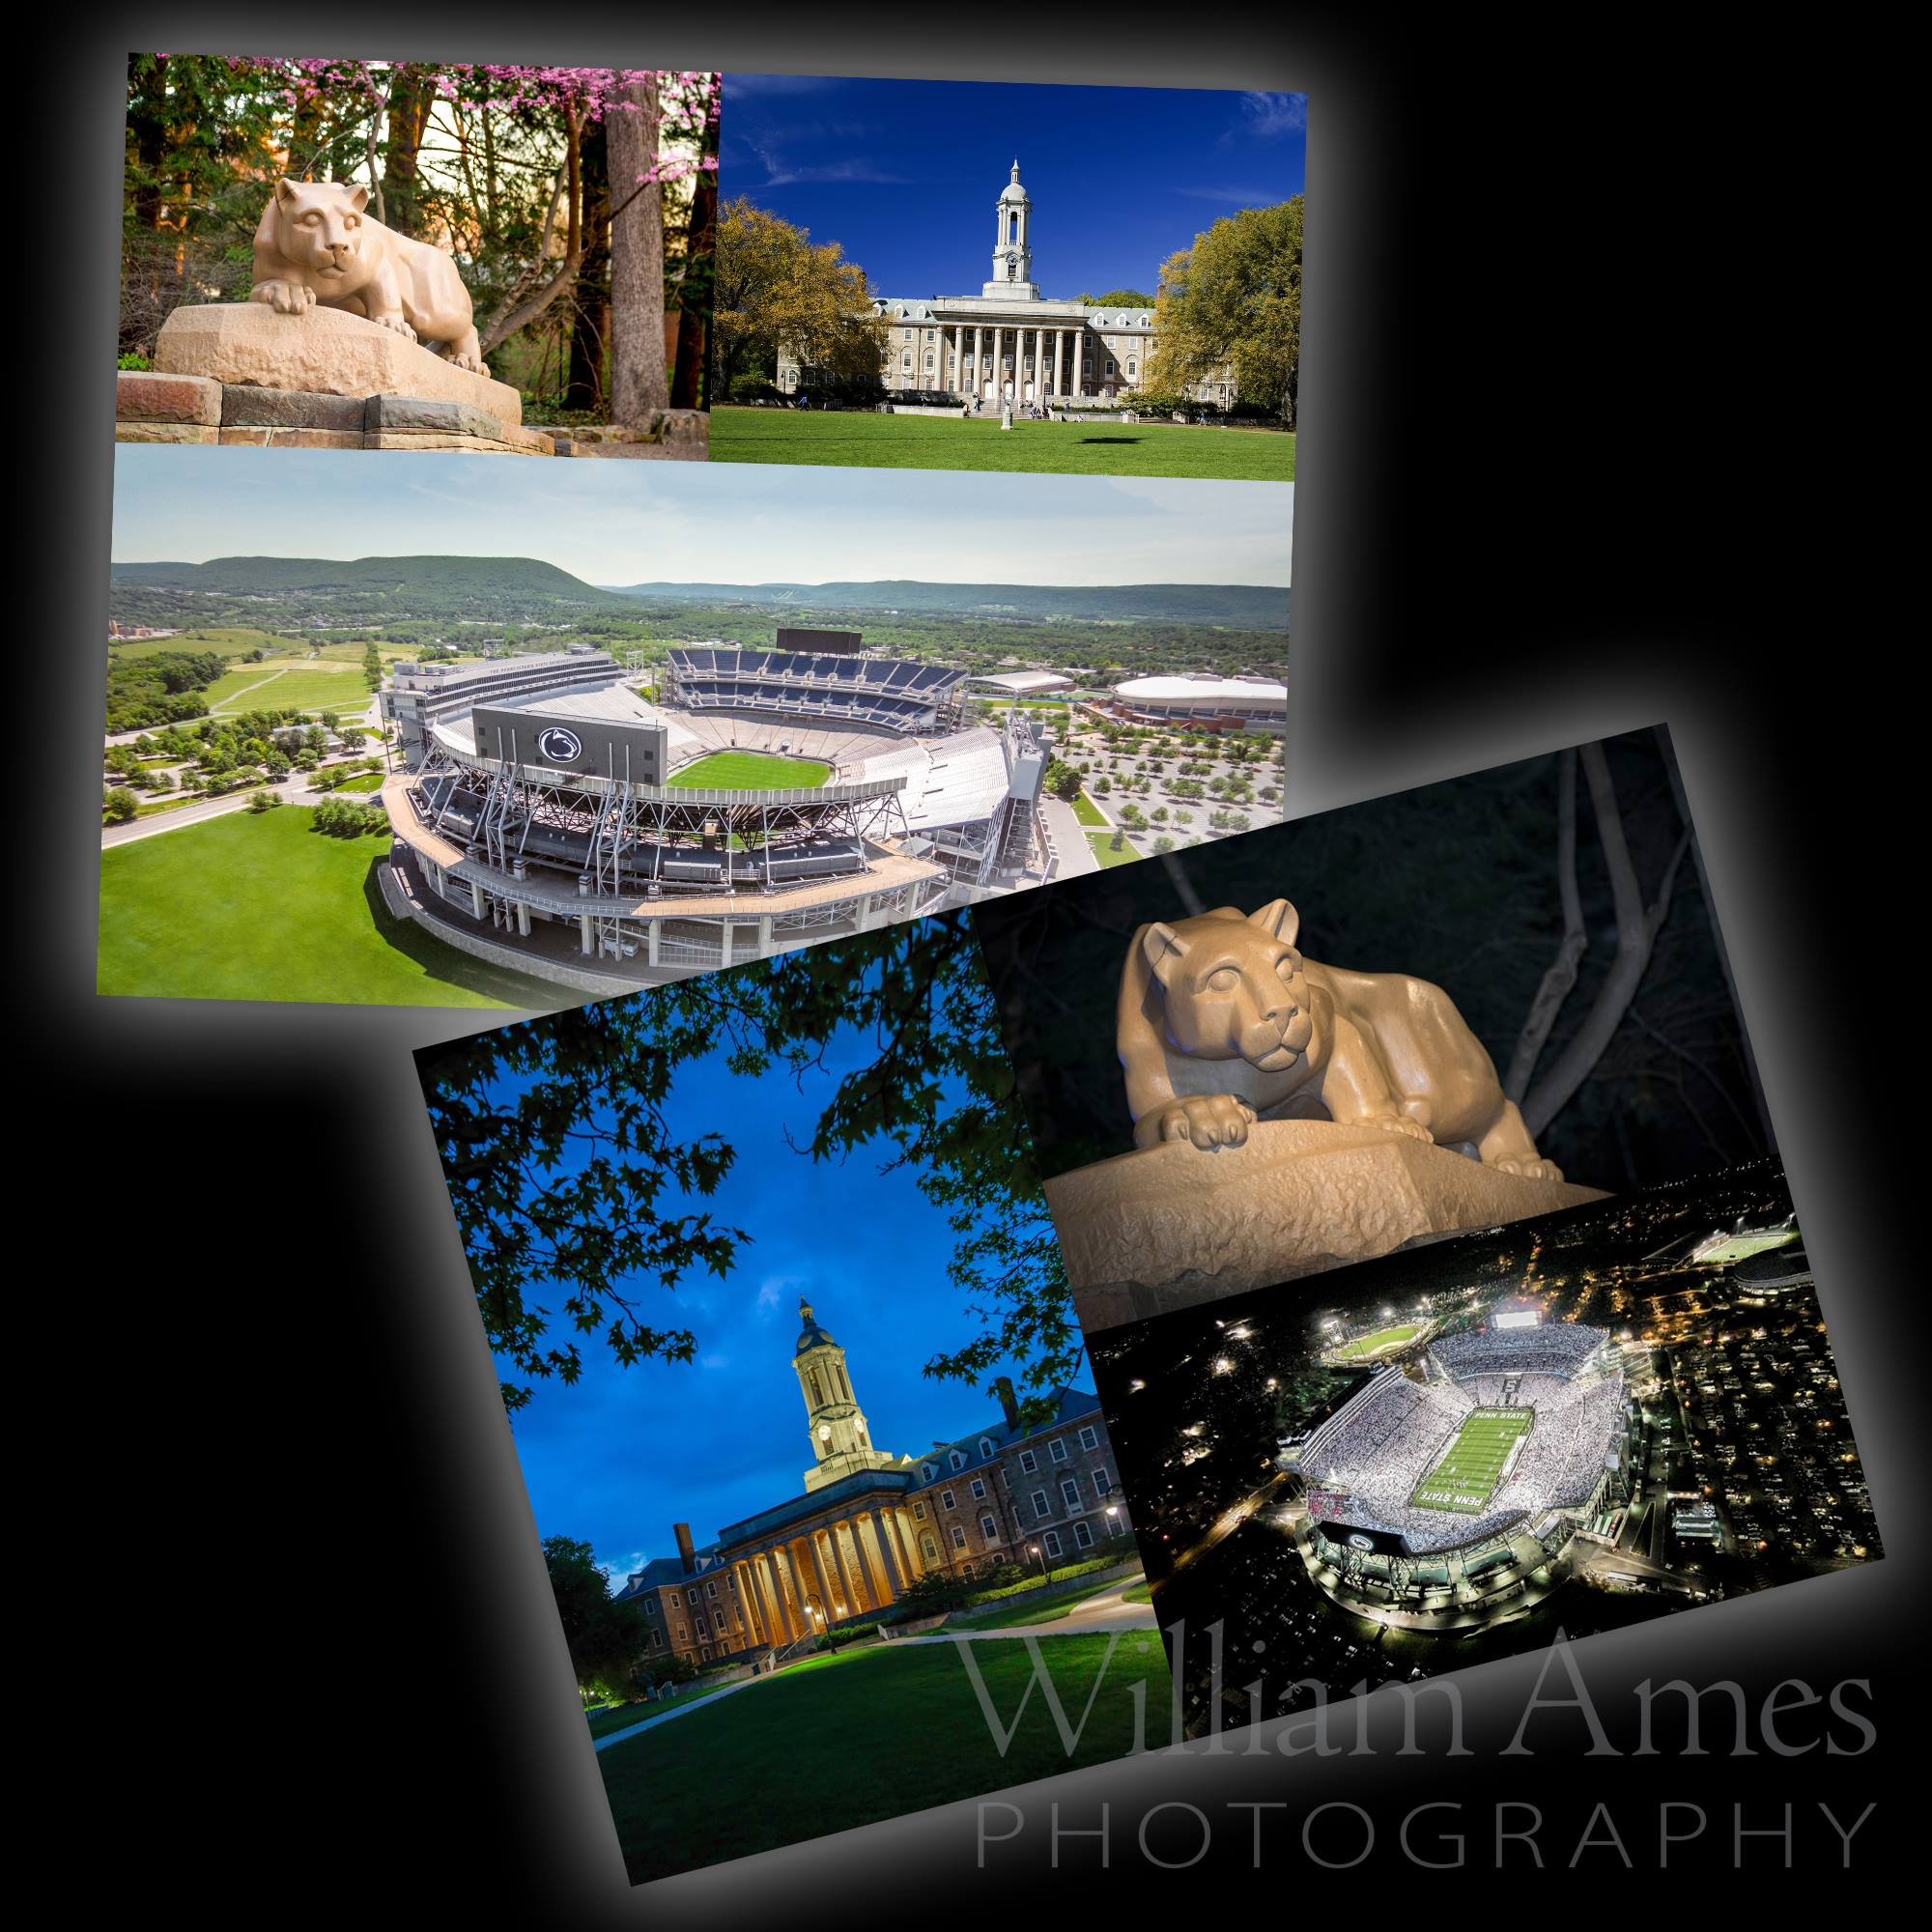 Penn State Photos - William Ames Photography